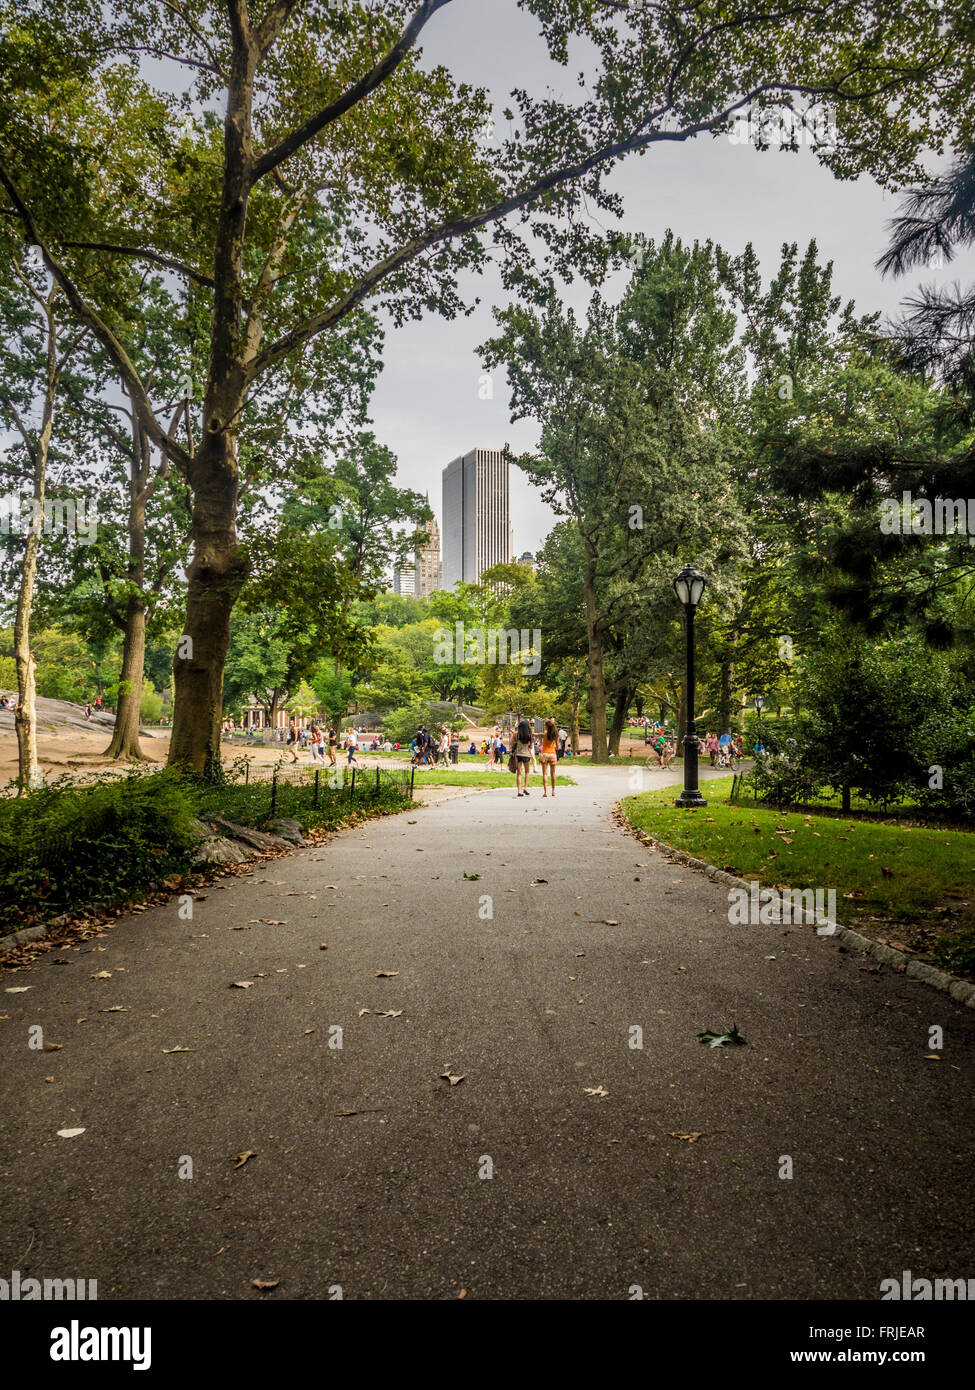 Central Park, New York City, USA - Stock Image